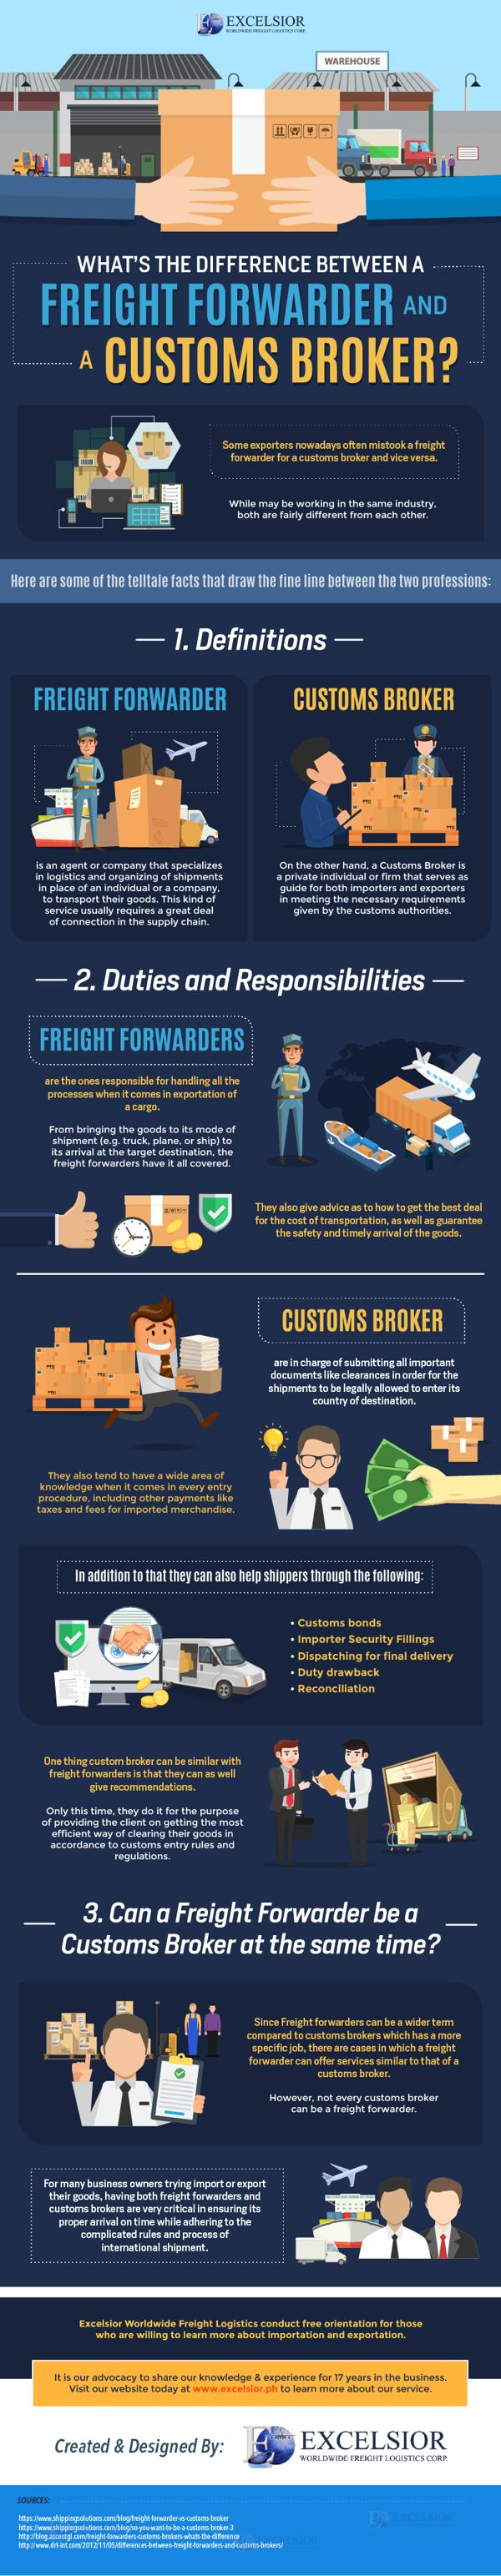 What's the Difference Between a Freight Forwarder and a Customs Broker 1